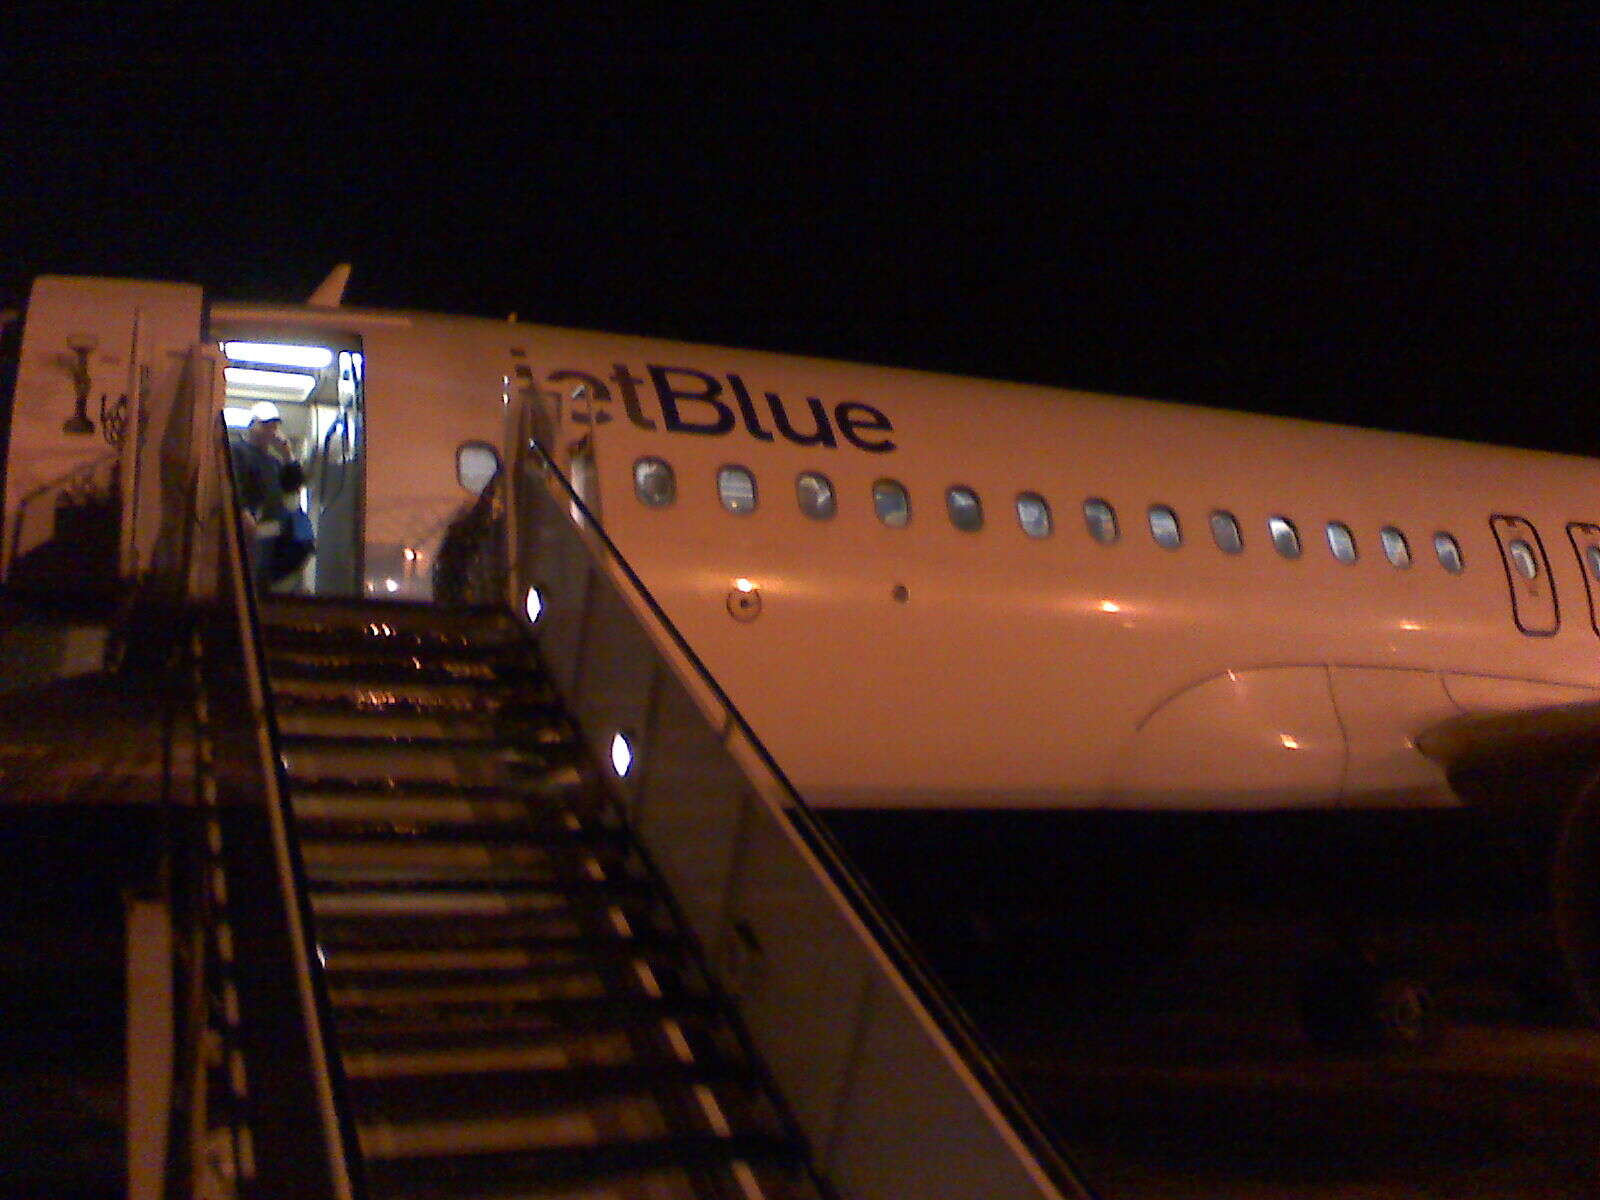 JetBlue sets date for start of flights between US and London